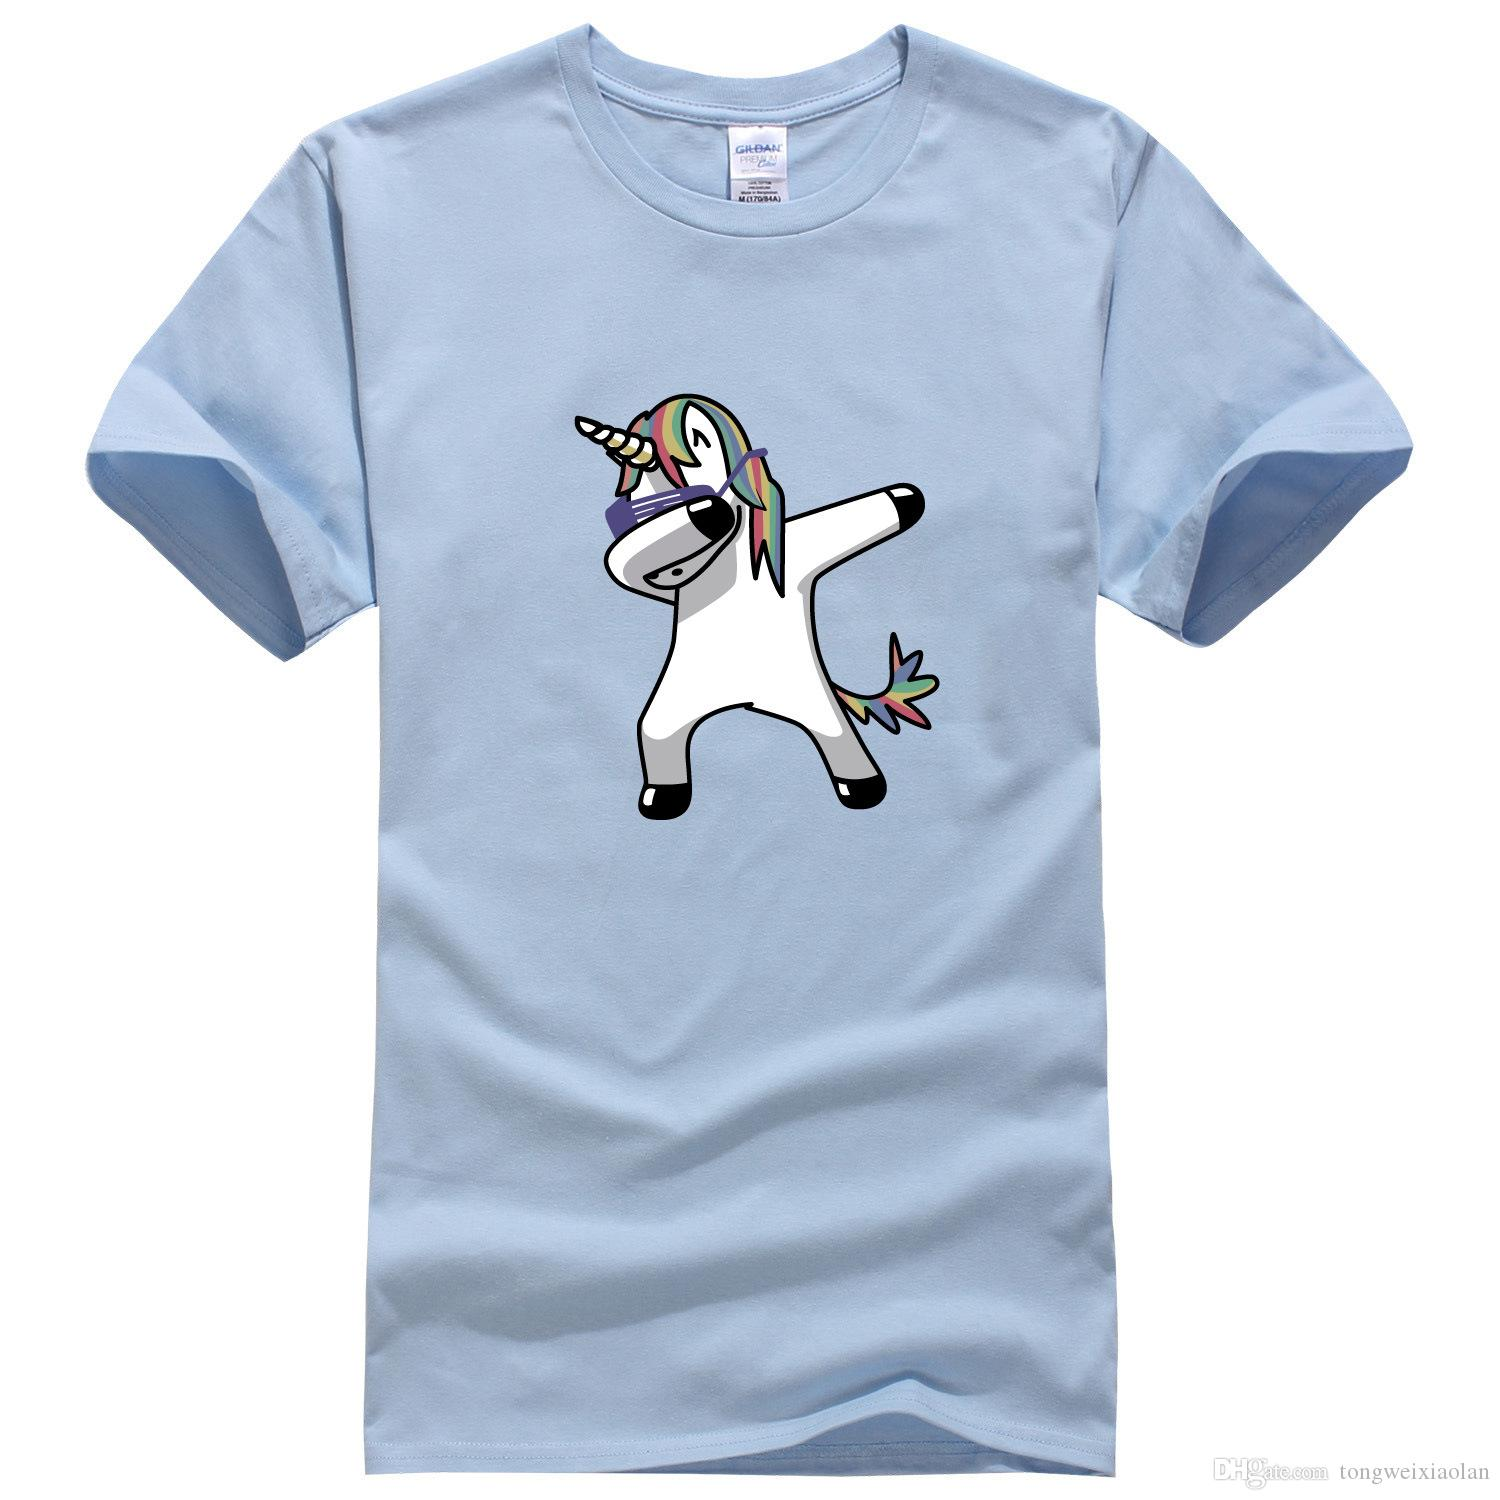 035d5b466 2019 Couples Loose Spoof Unicorn Printing Pure Cotton Half Sleeved Round  Collar T Shirt Loose T Shirt HCY007 Teet Shirts Tee Shirts For Sale From ...